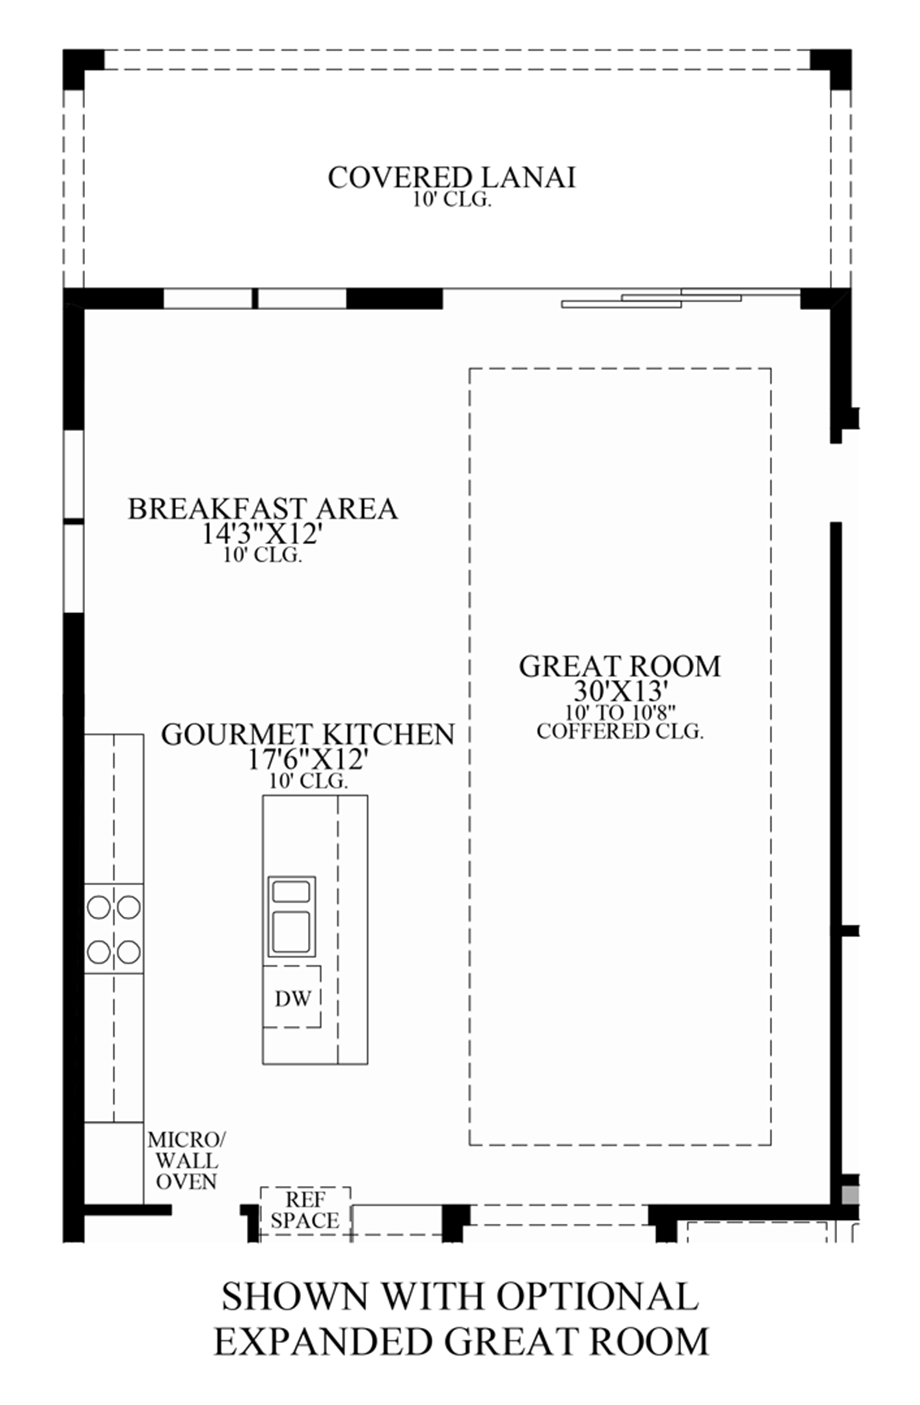 Optional Expanded Great Room Floor Plan